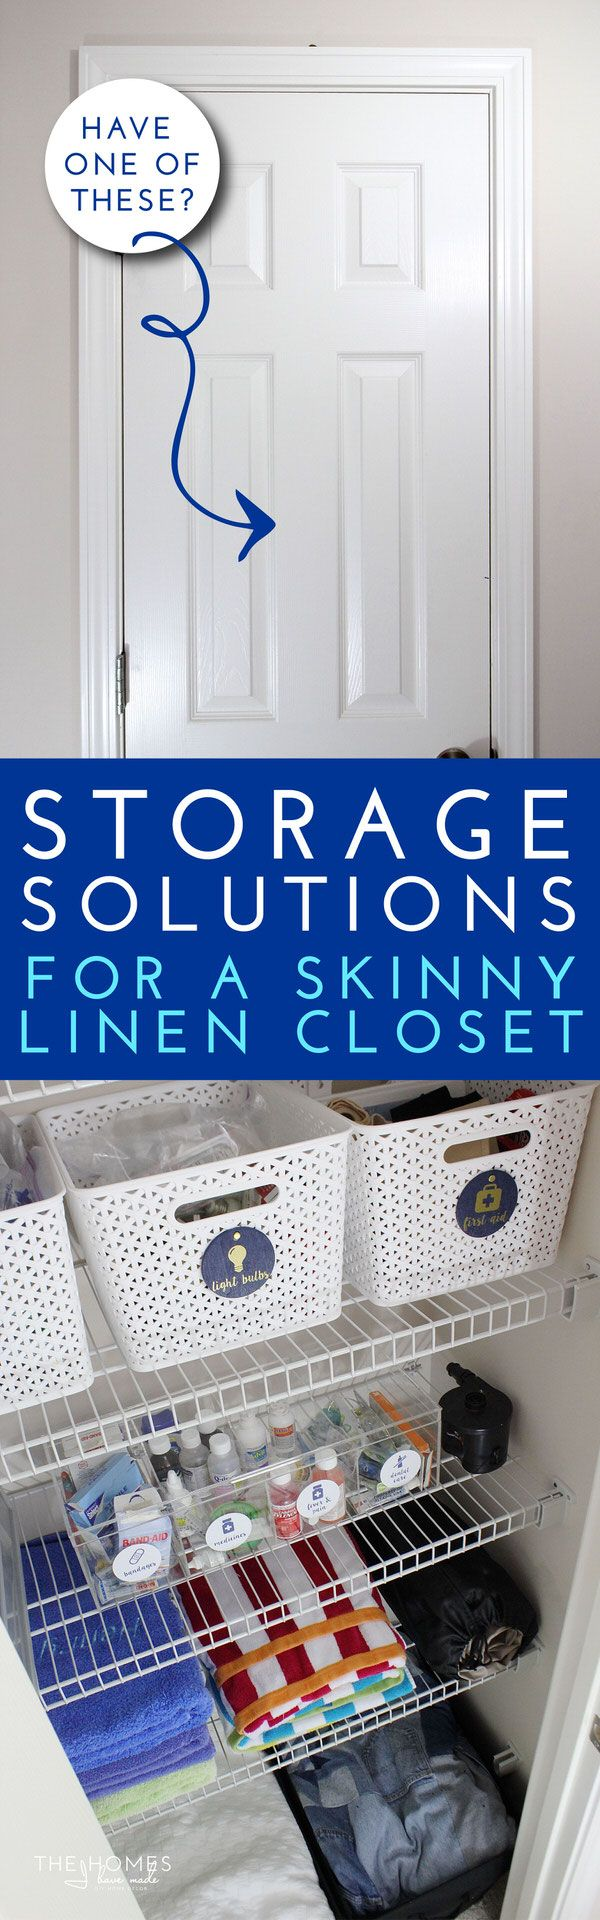 Storage solutions for a skinny linen closet 30days - Storage solutions for small closets ...